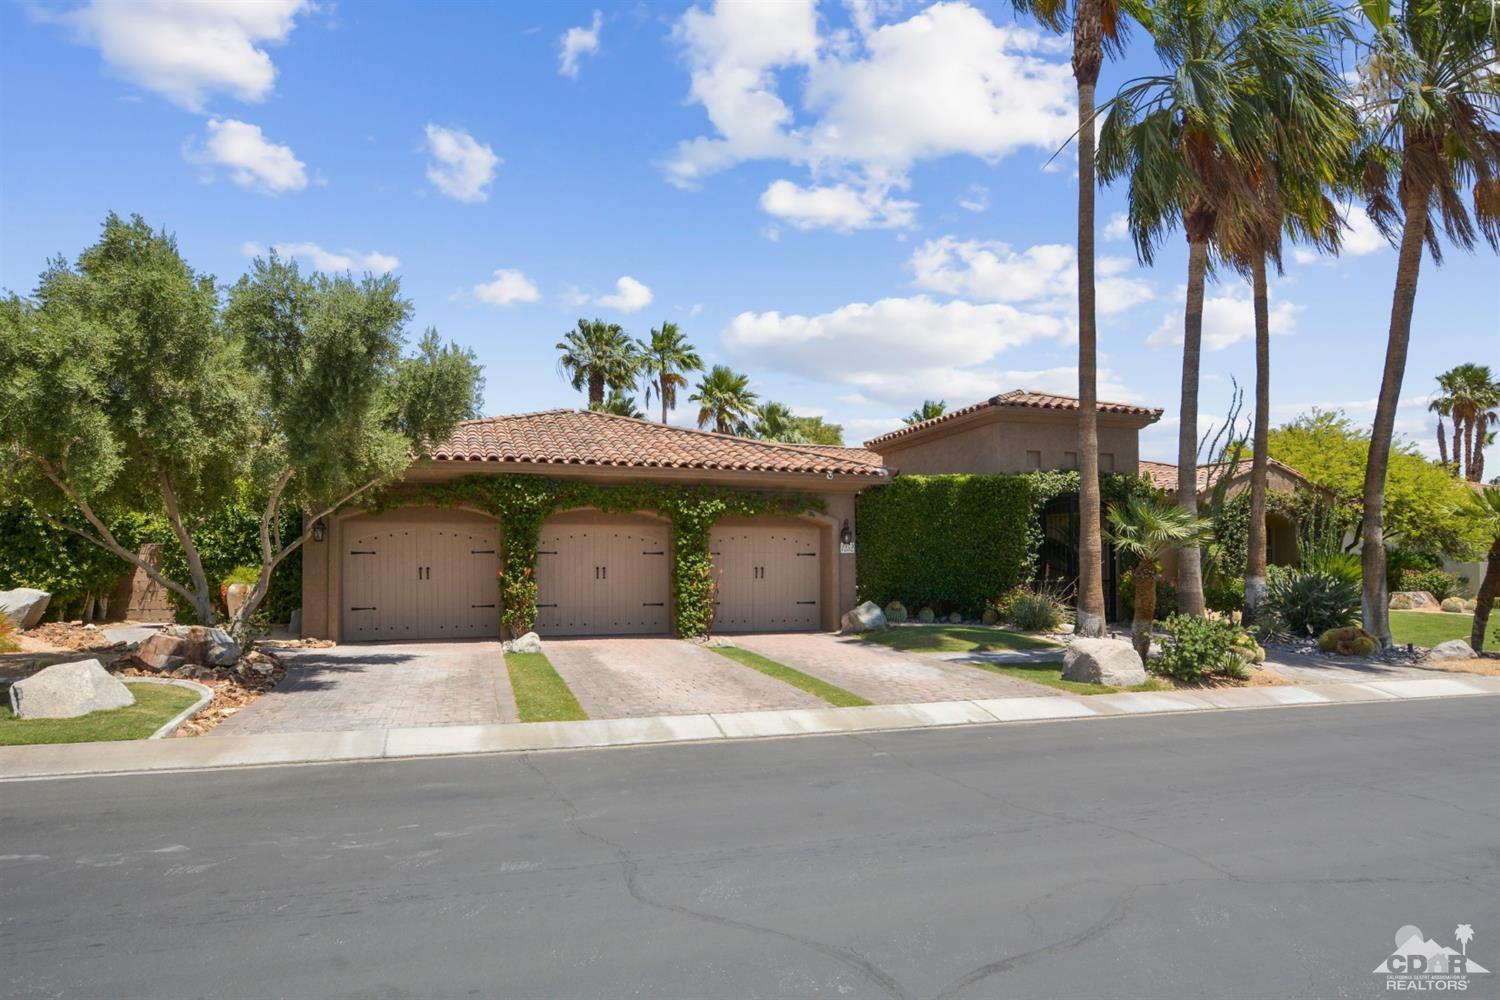 1252 Colony Way, Palm Springs, California 92262, 4 Bedrooms Bedrooms, ,4 BathroomsBathrooms,Residential,Sold,1252 Colony Way,219016169